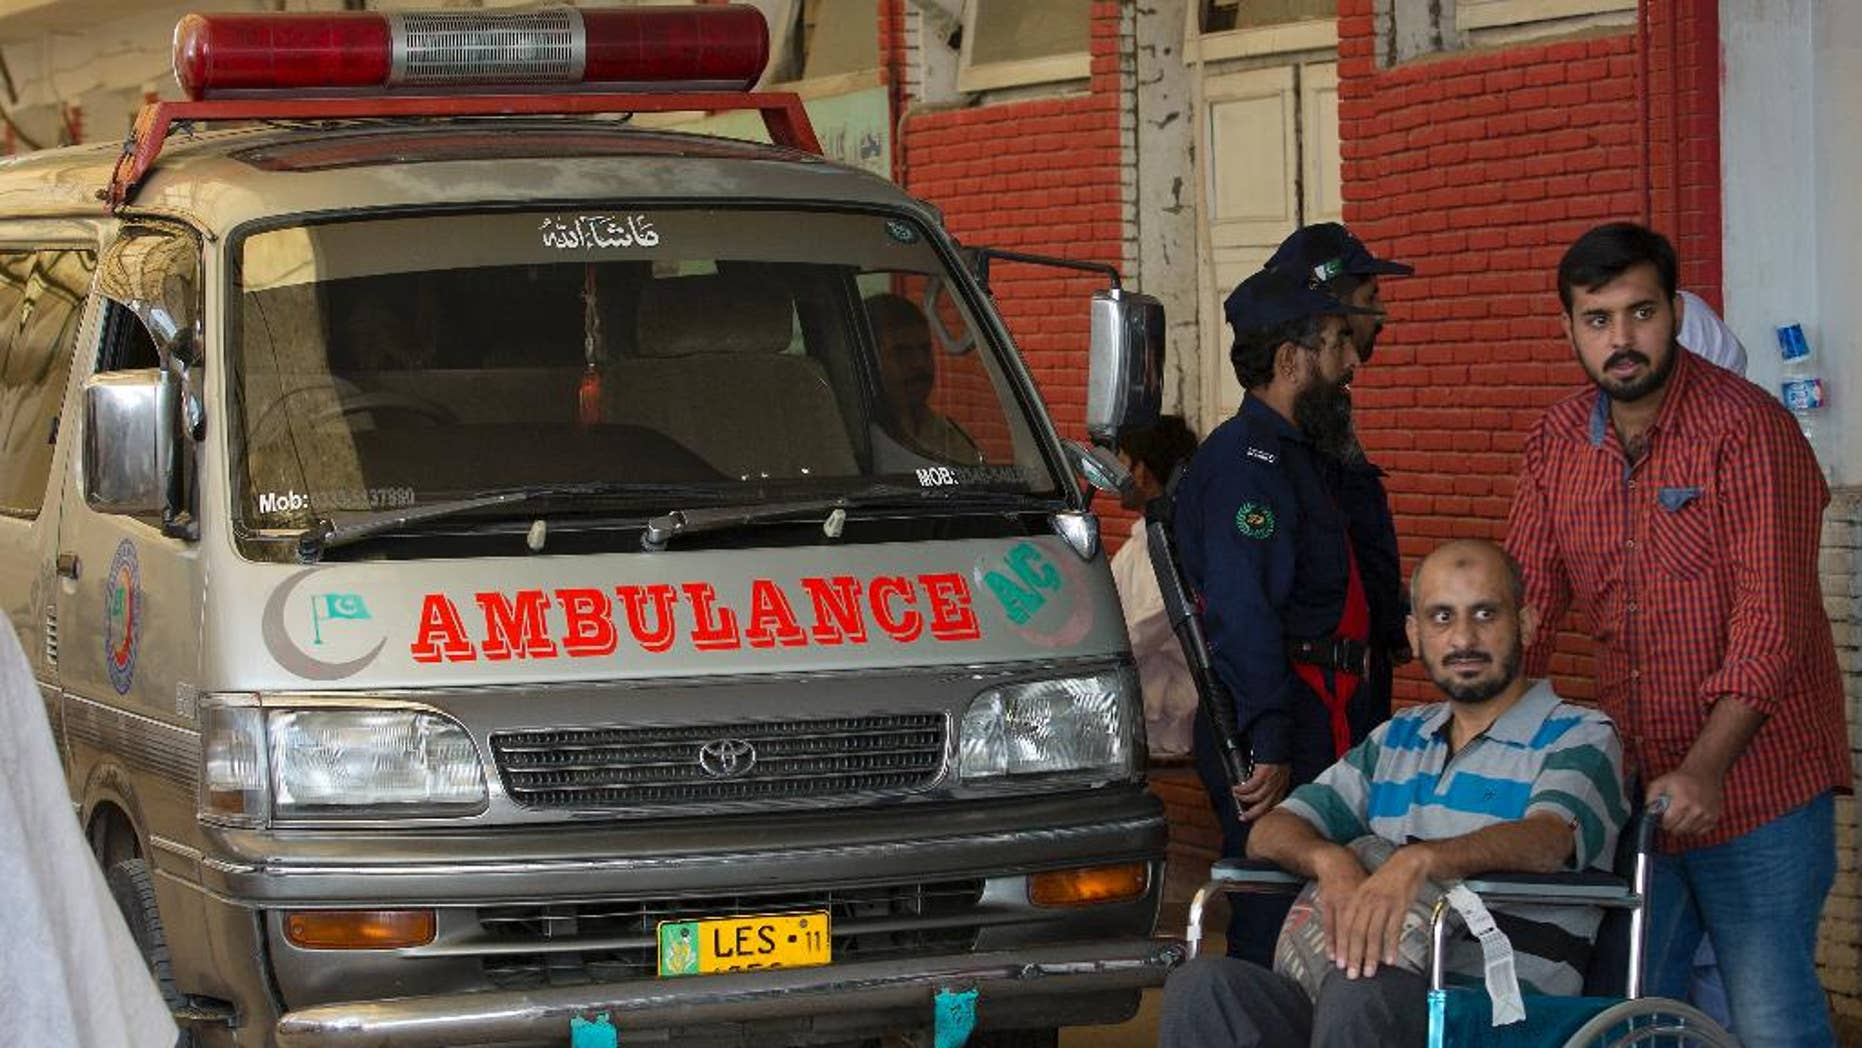 An ambulance that brought the body of a Spanish diplomat is parked at a clinic in Islamabad, Pakistan, Thursday, Oct. 13, 2016. Pakistani police say a Spanish diplomat has been found dead in his Islamabad home in what authorities suspect is a suicide. Police officer Iftikhar Chatha said Thursday that the 60-year-old man was found in his bedroom by a domestic servant. (AP Photo/B.K. Bangash)